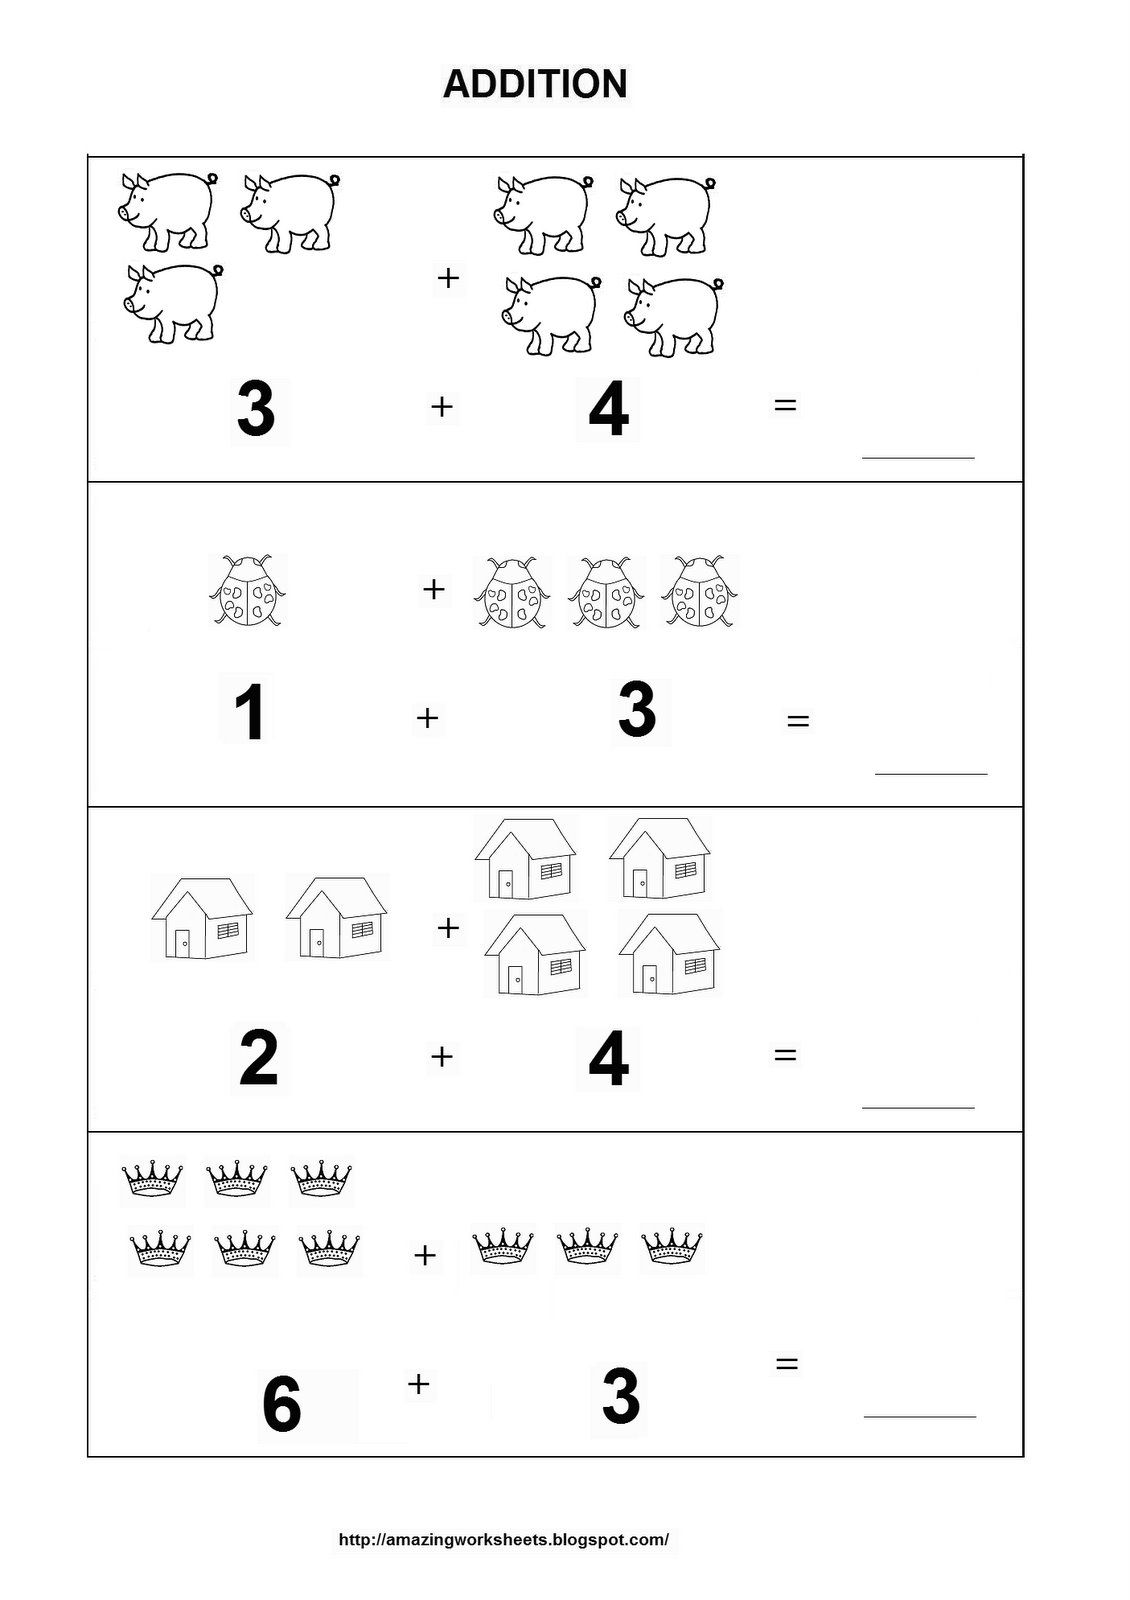 Printables Additions Worksheets kindergarten addition worksheets free syndeomedia 1000 images about maths on pinterest online math games